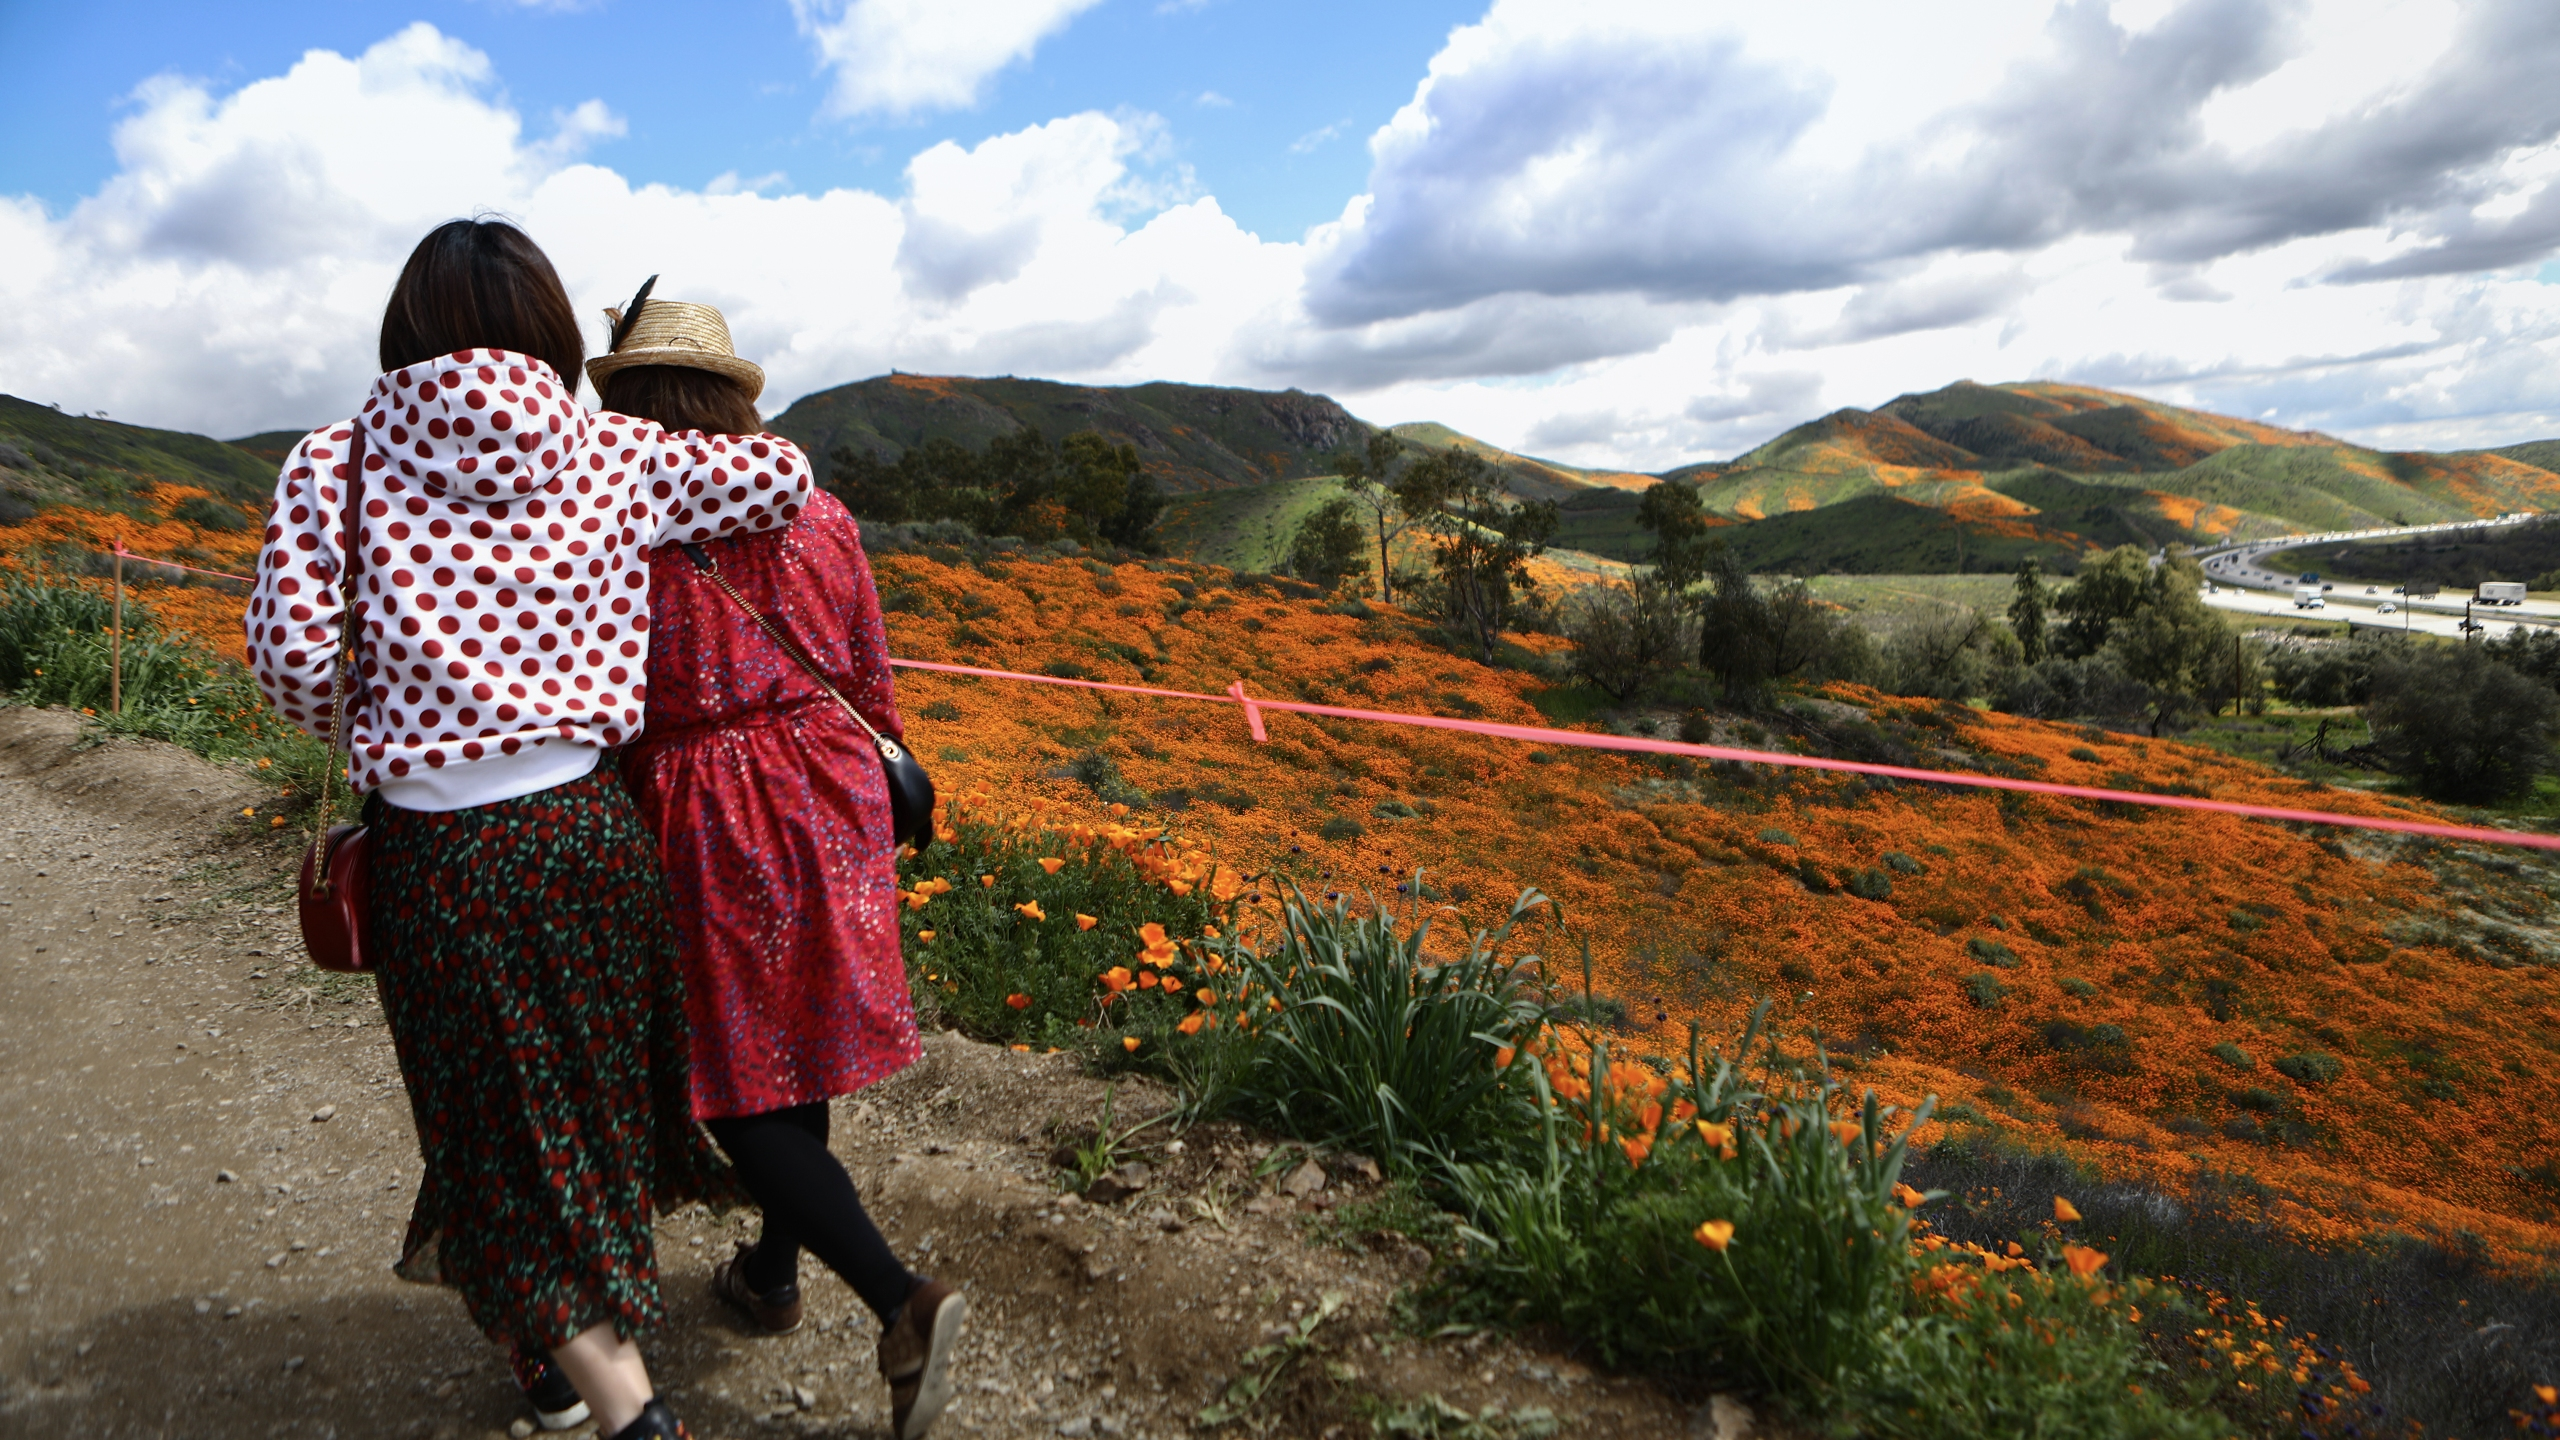 People visit a 'super bloom' of wild poppies blanketing the hills of Walker Canyon on March 12, 2019 near Lake Elsinore. (Credit: Mario Tama/Getty Images)